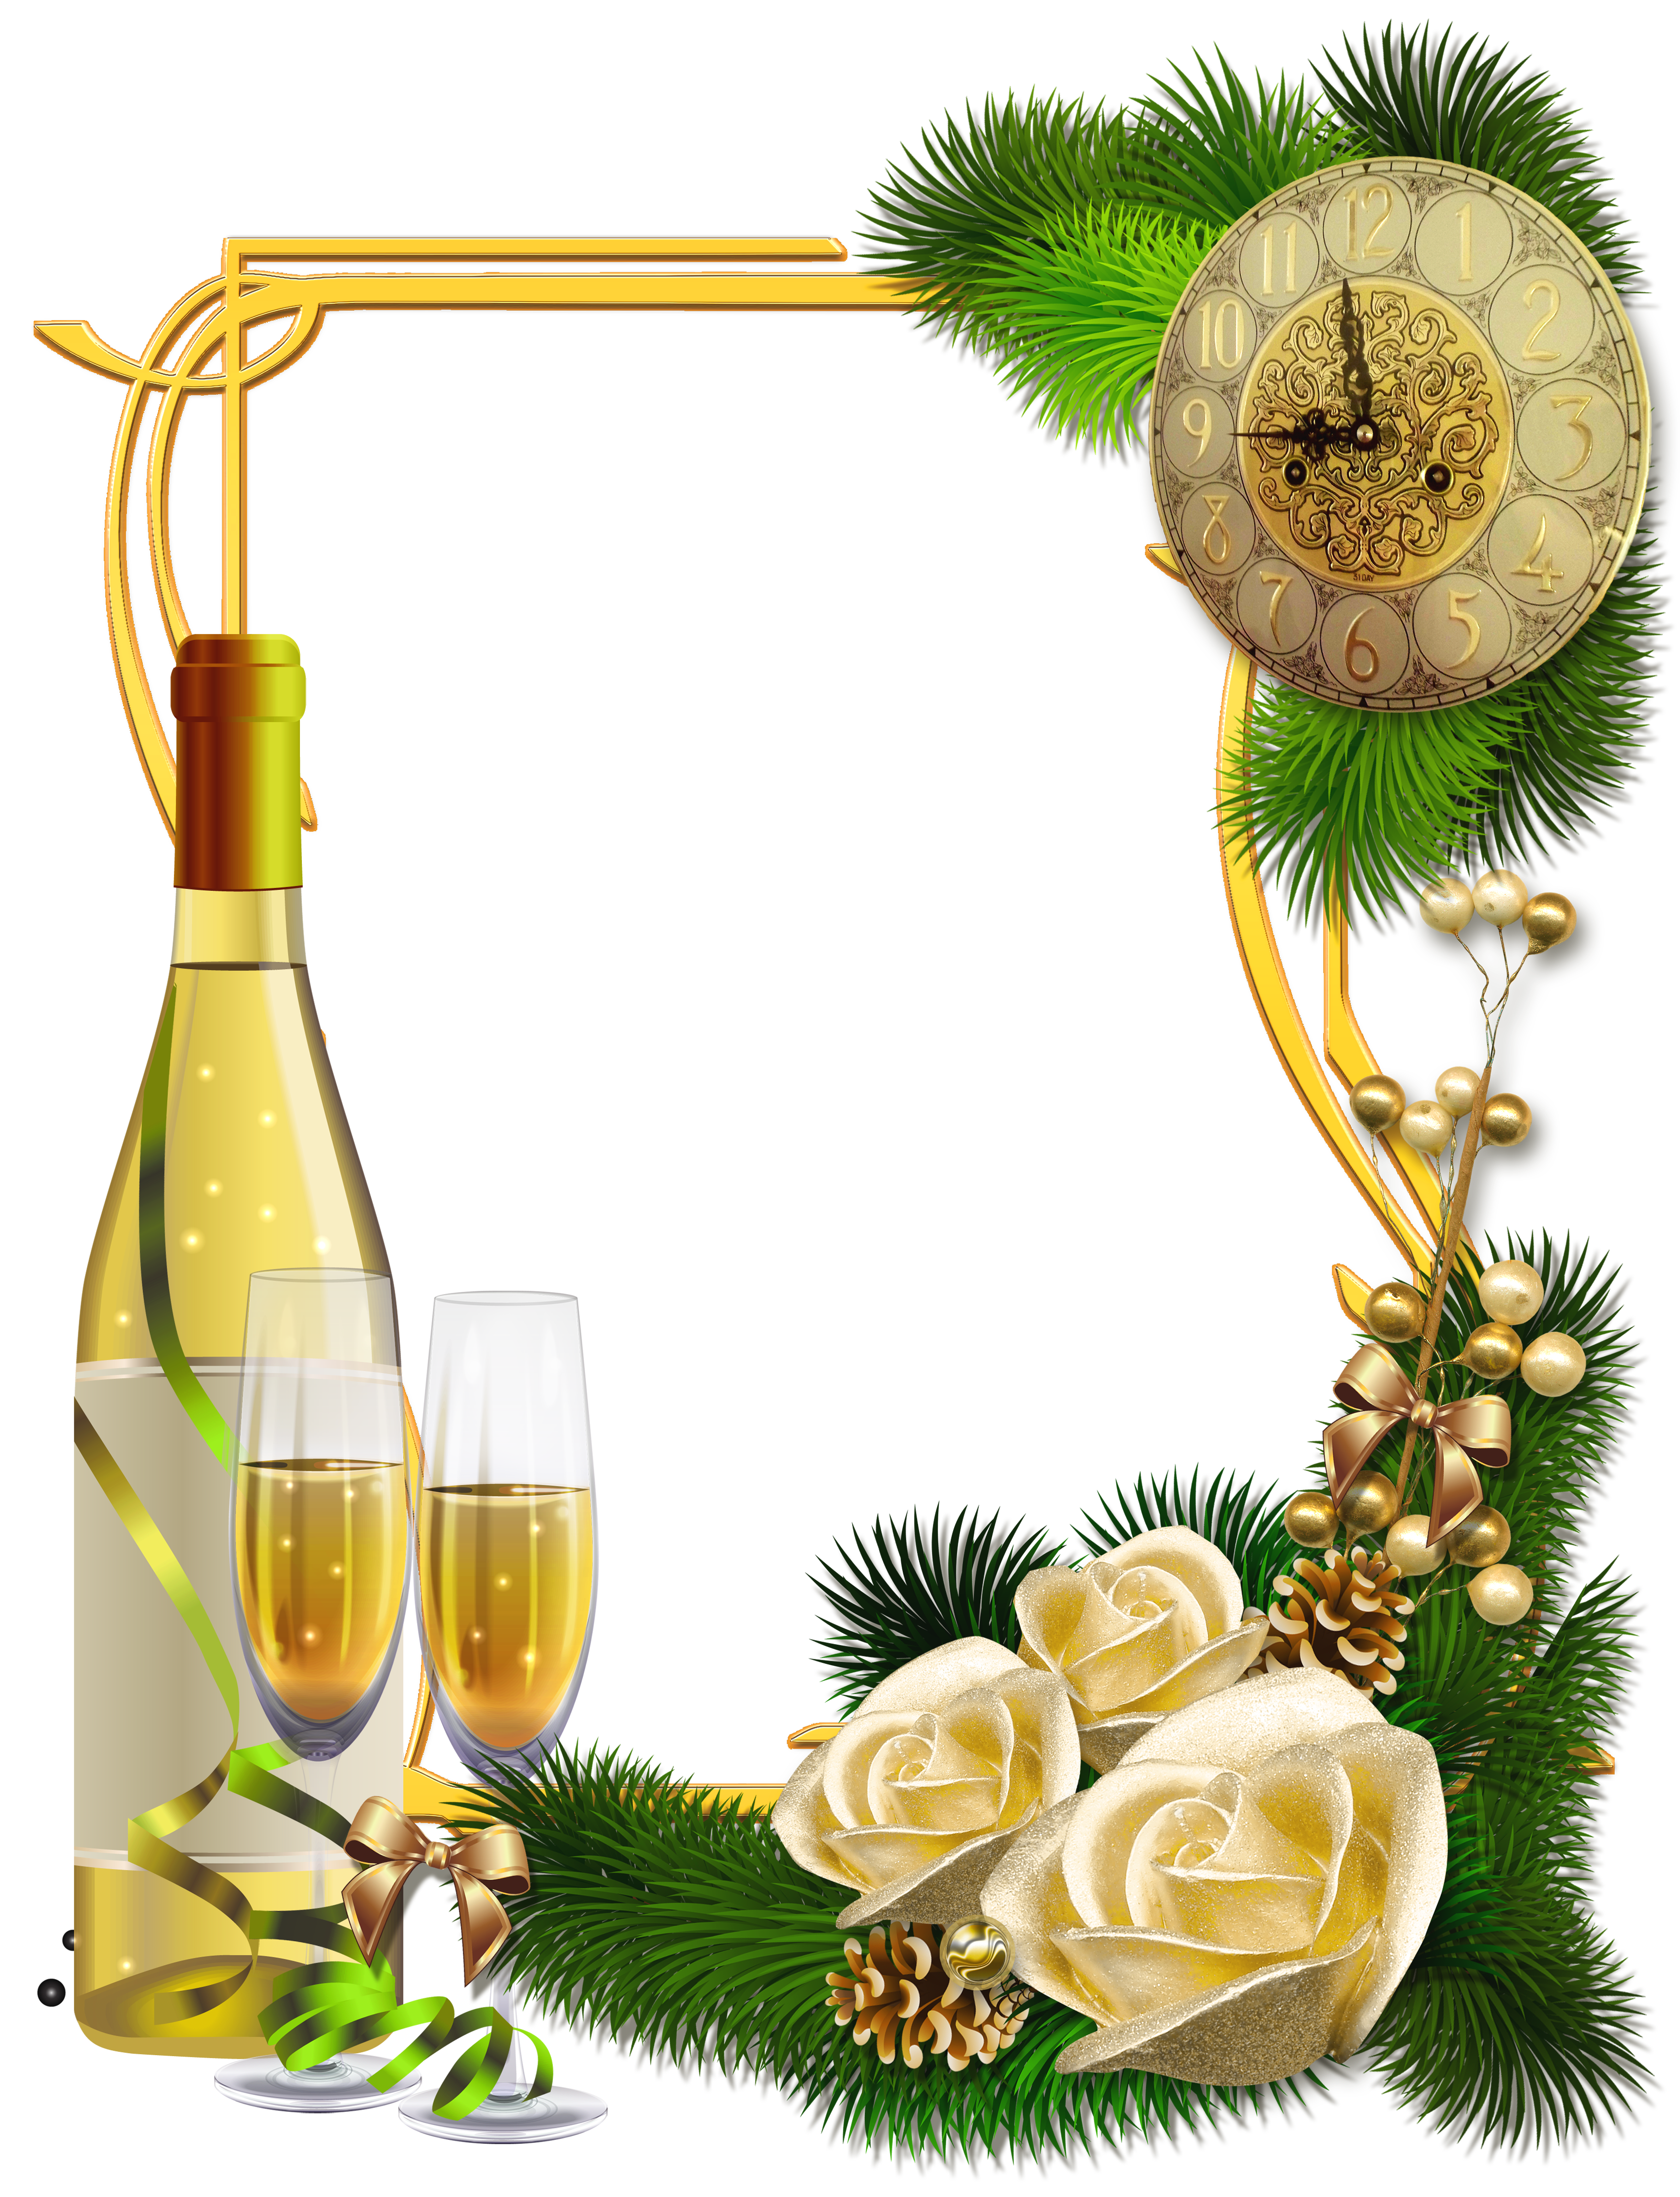 Champagne frame cliparts clipart royalty free New Year PNG Photo Frame with Champagne | Gallery Yopriceville ... clipart royalty free